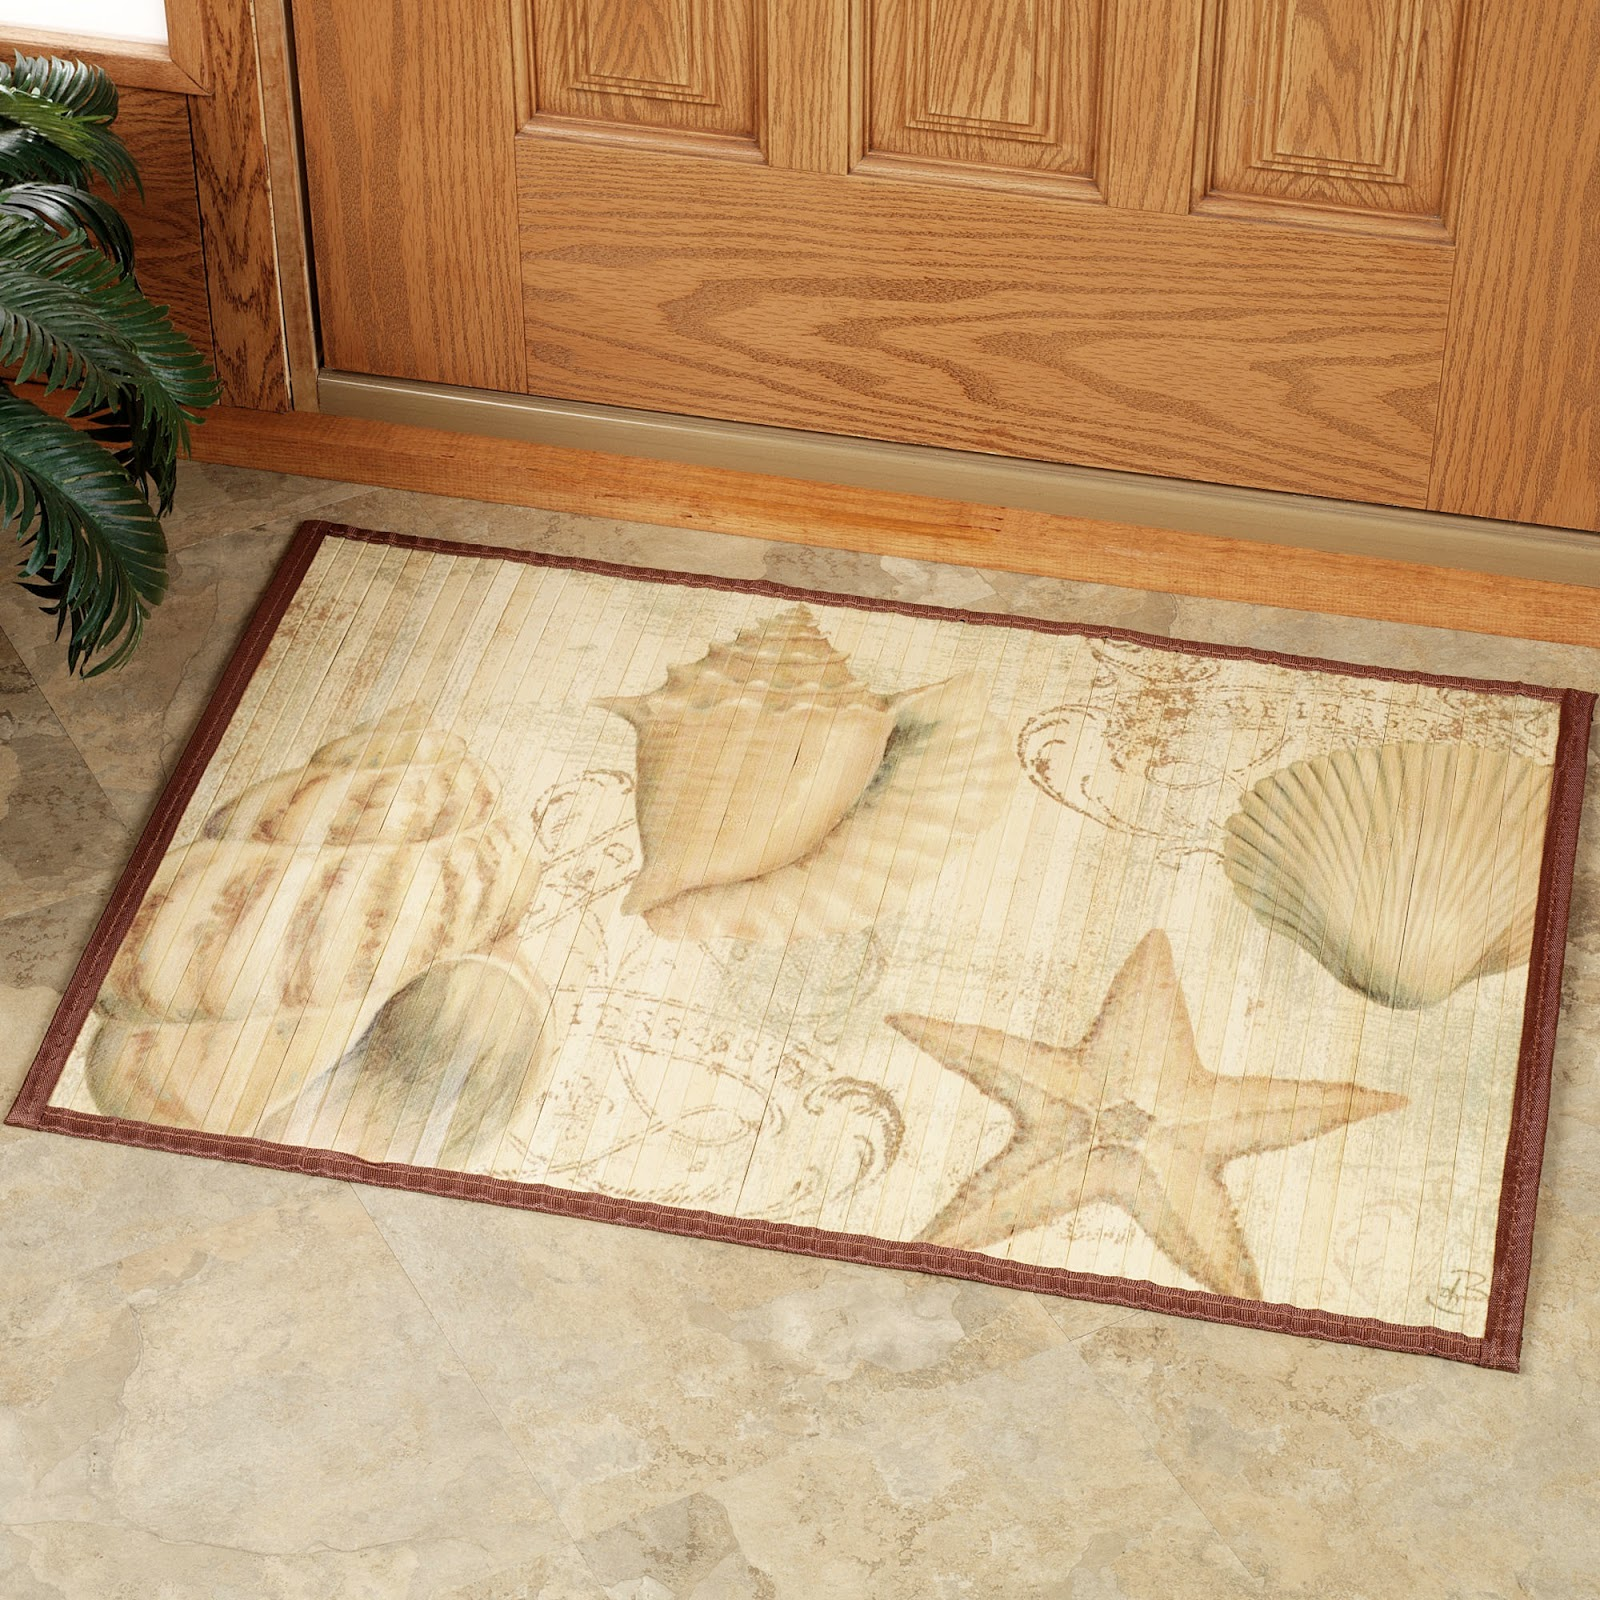 floor decor set bamboo floors installation mat best ideas idea home